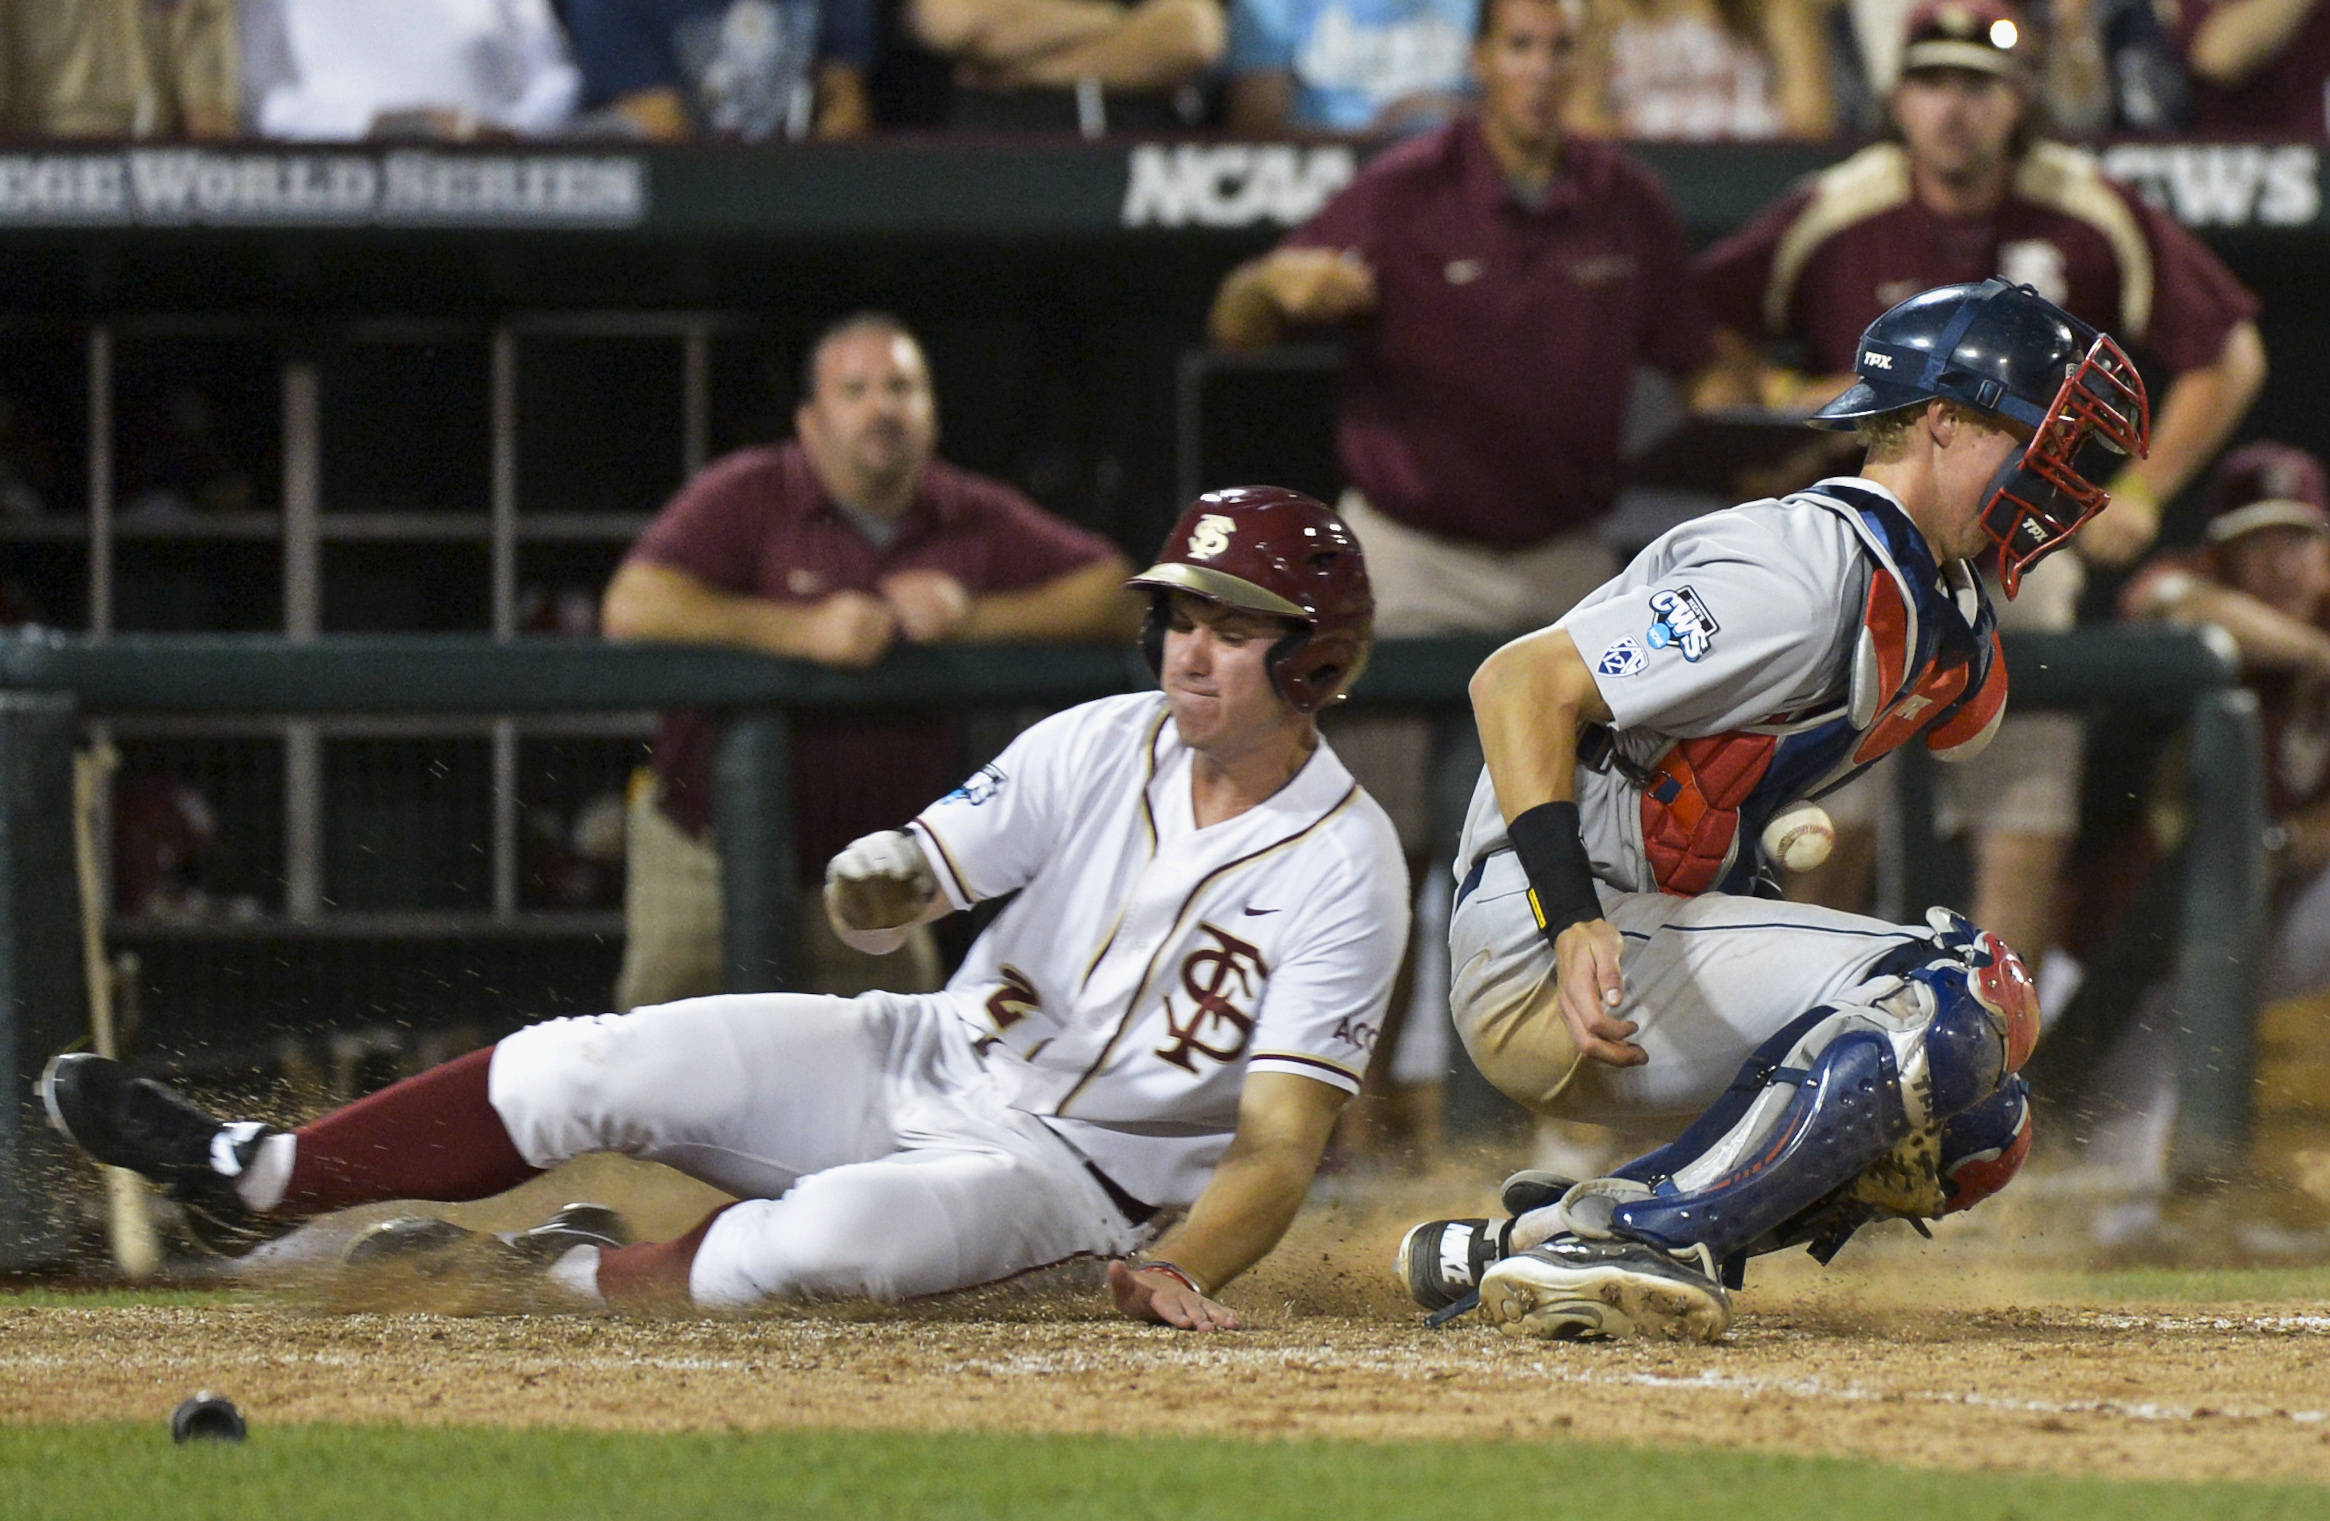 Florida State's Josh Delph, left, scores against Arizona catcher Riley Moore. (AP Photo/Ted Kirk)